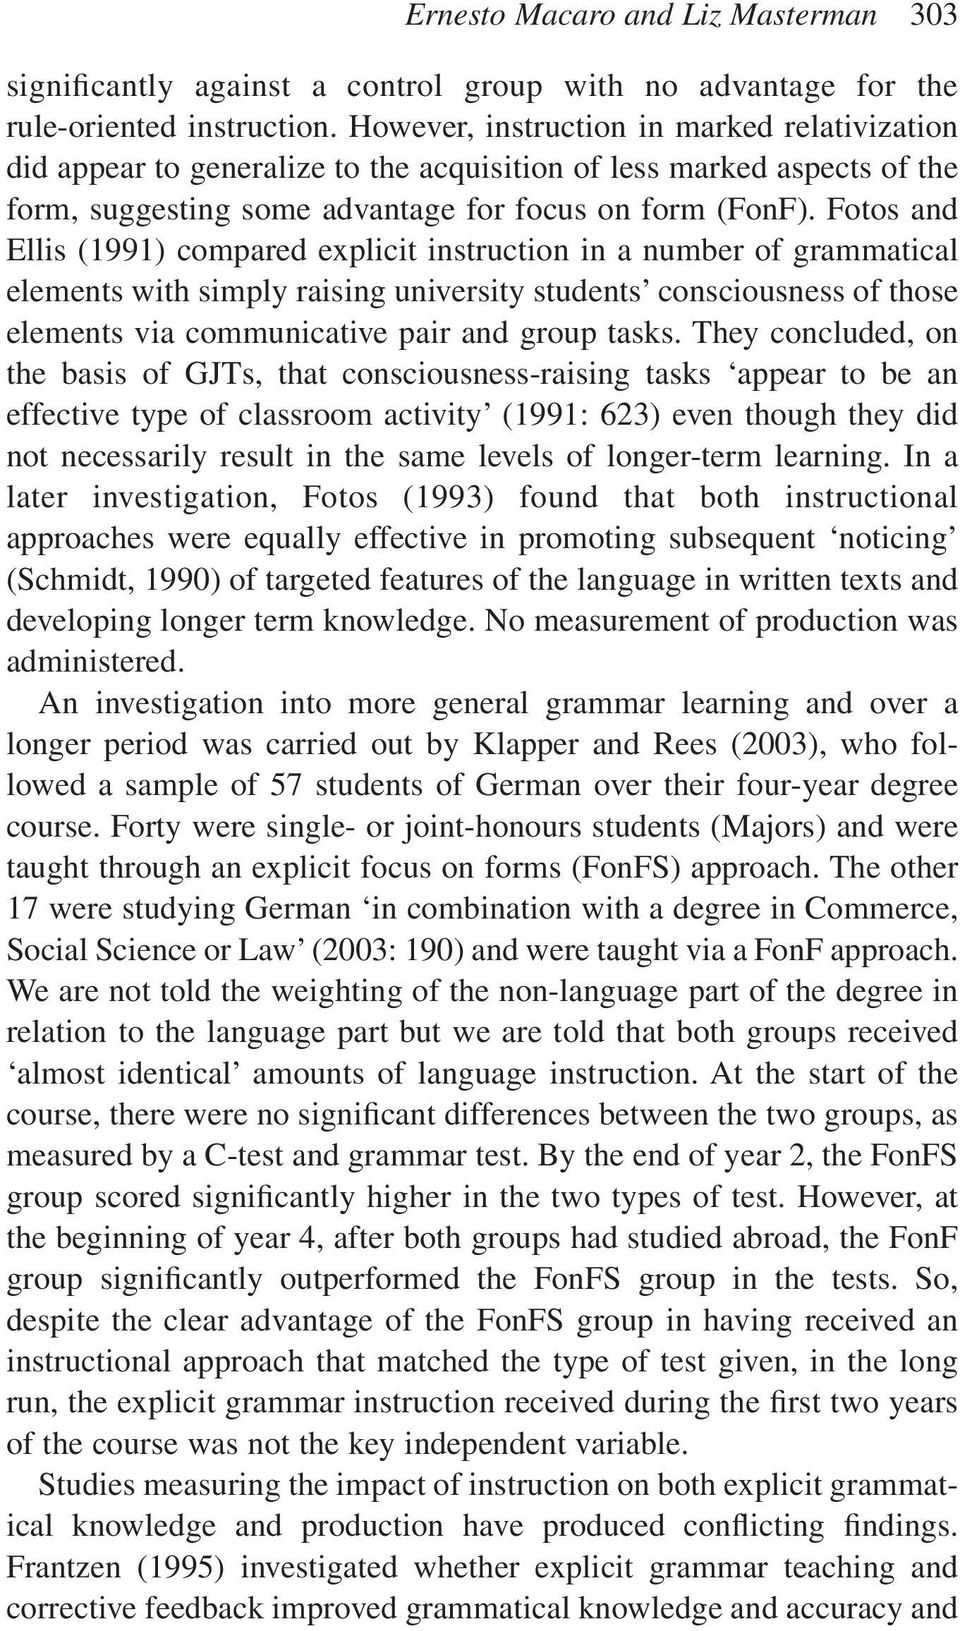 Fotos and Ellis (1991) compared explicit instruction in a number of grammatical elements with simply raising university students consciousness of those elements via communicative pair and group tasks.